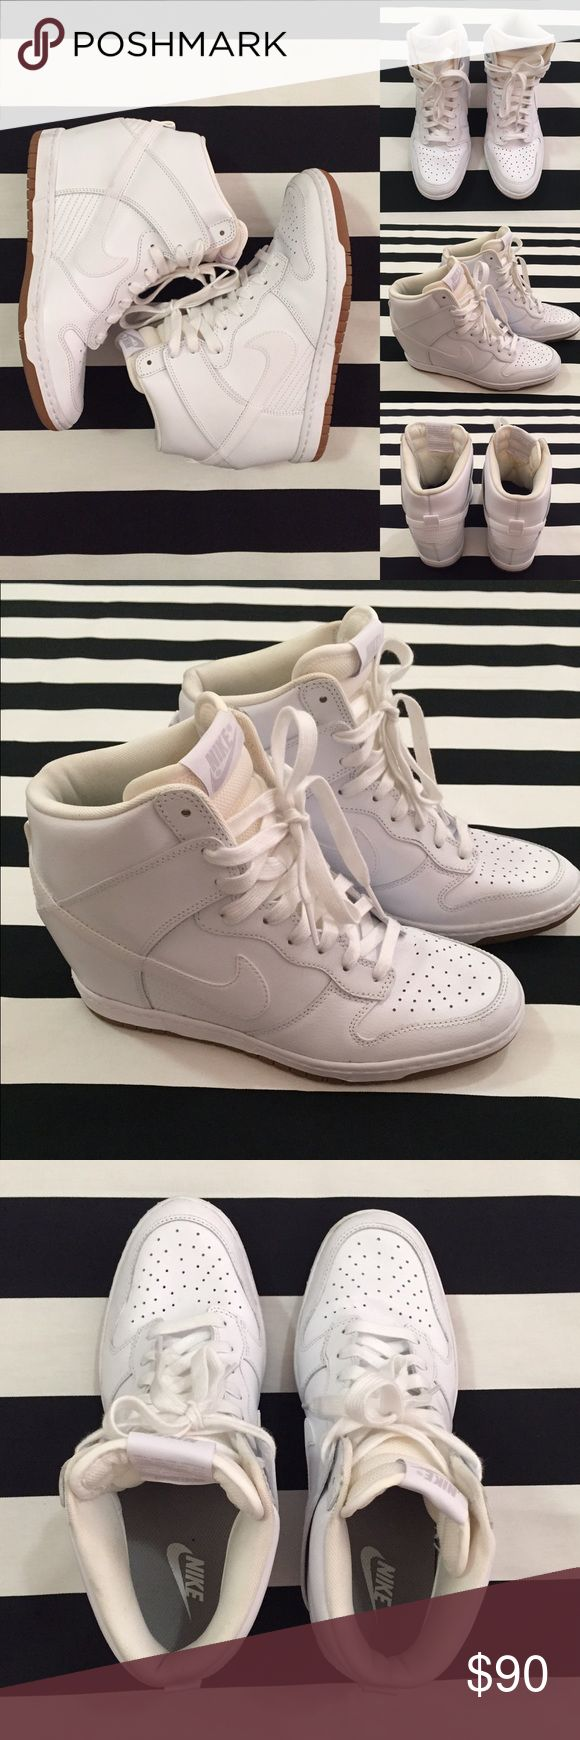 [Nike] Dunk Sky Hi women's wedge sneakers sz9.5 [Nike] Dunk Sky Hi women's wedge sneakers sz9.5 •listing •great condition, worn once •white leather with ivory/off white interior •wedge sneaker •interior has some slight color changes, w30 written on bottom of shoe, small scuff on heel of left shoe, otherwise great condition •Offers welcomed using offer button or Bundle for best discount Nike Shoes Athletic Shoes